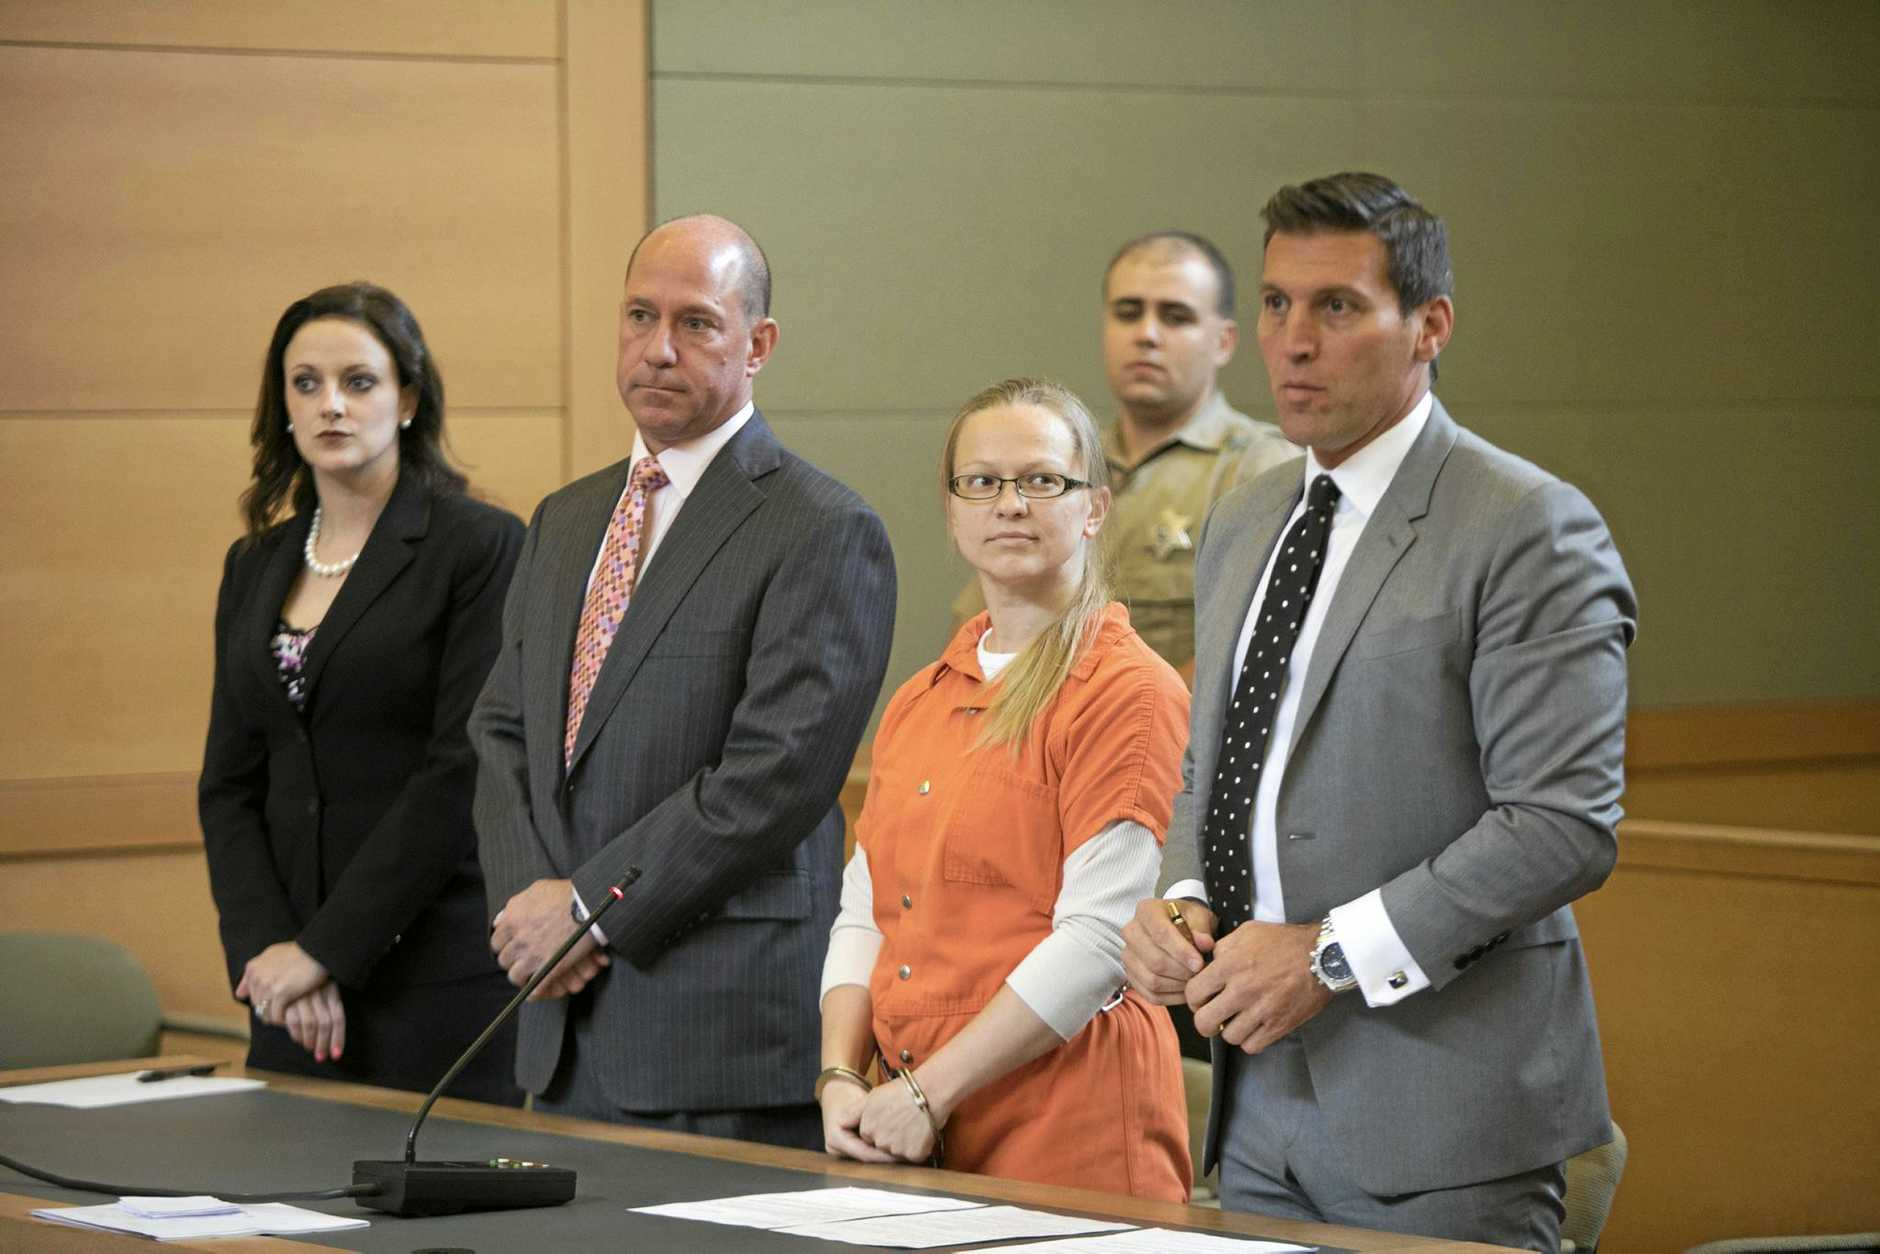 Accompanied by her attorneys, Angelika Graswald, second from right, stands in an Orange County court.